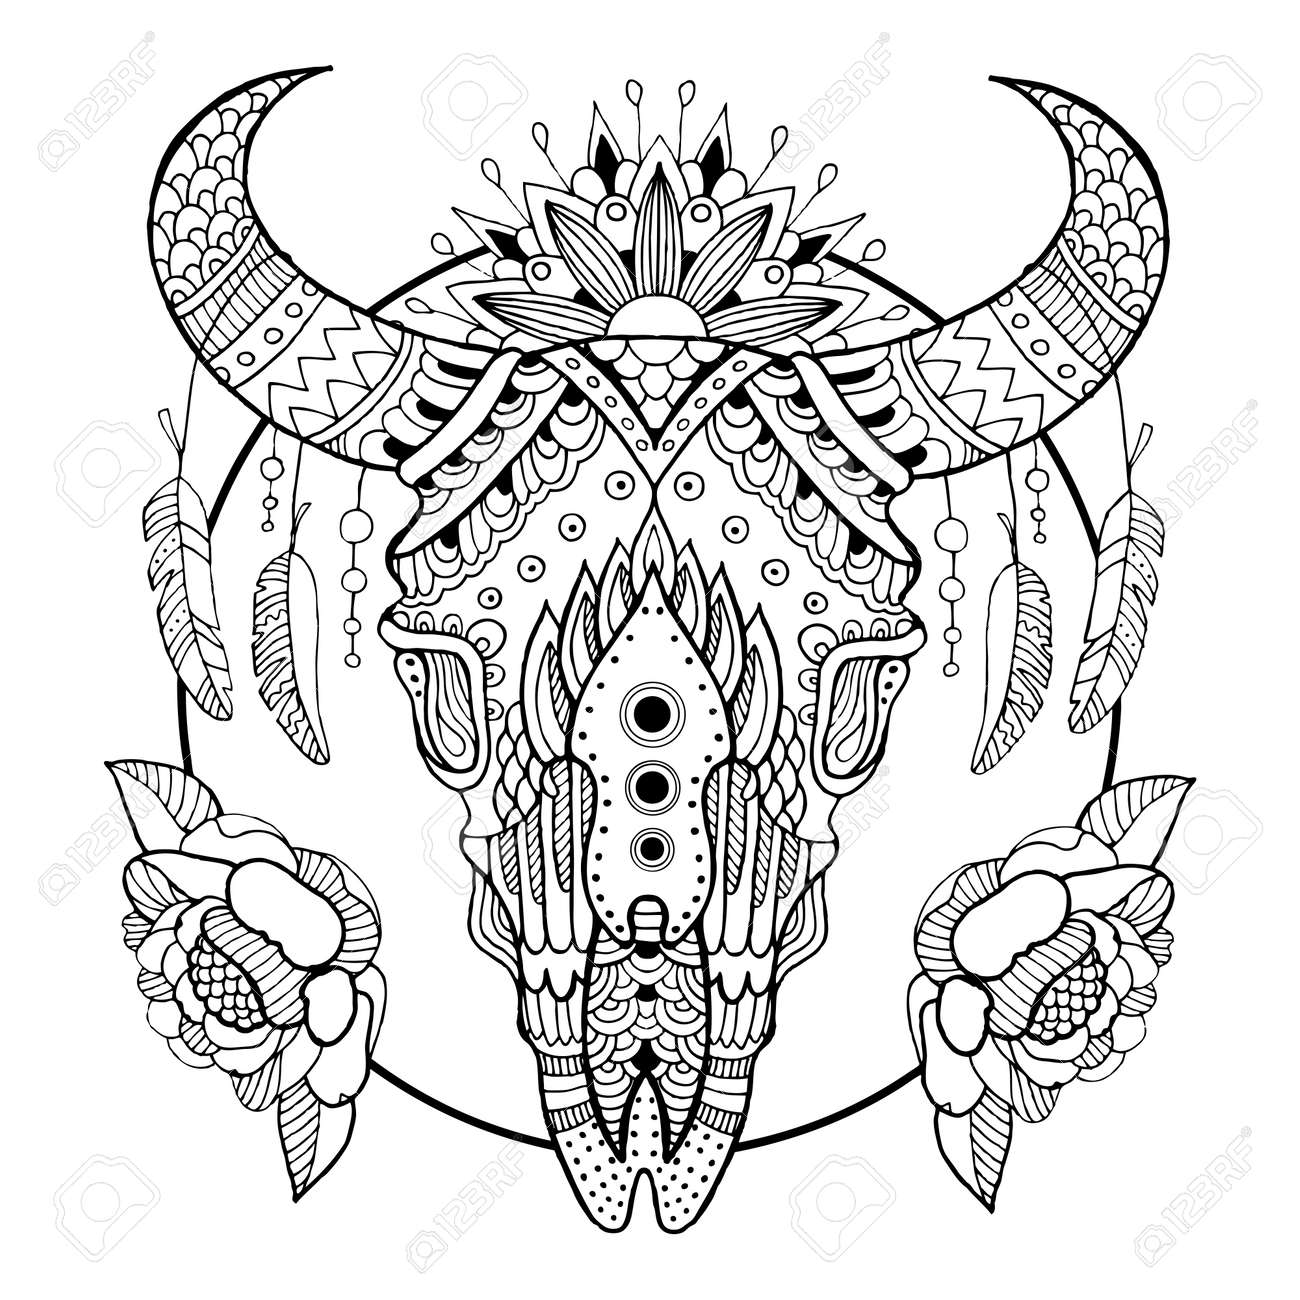 Cow Skull Coloring Book Vector Illustration Royalty Free Cliparts ...